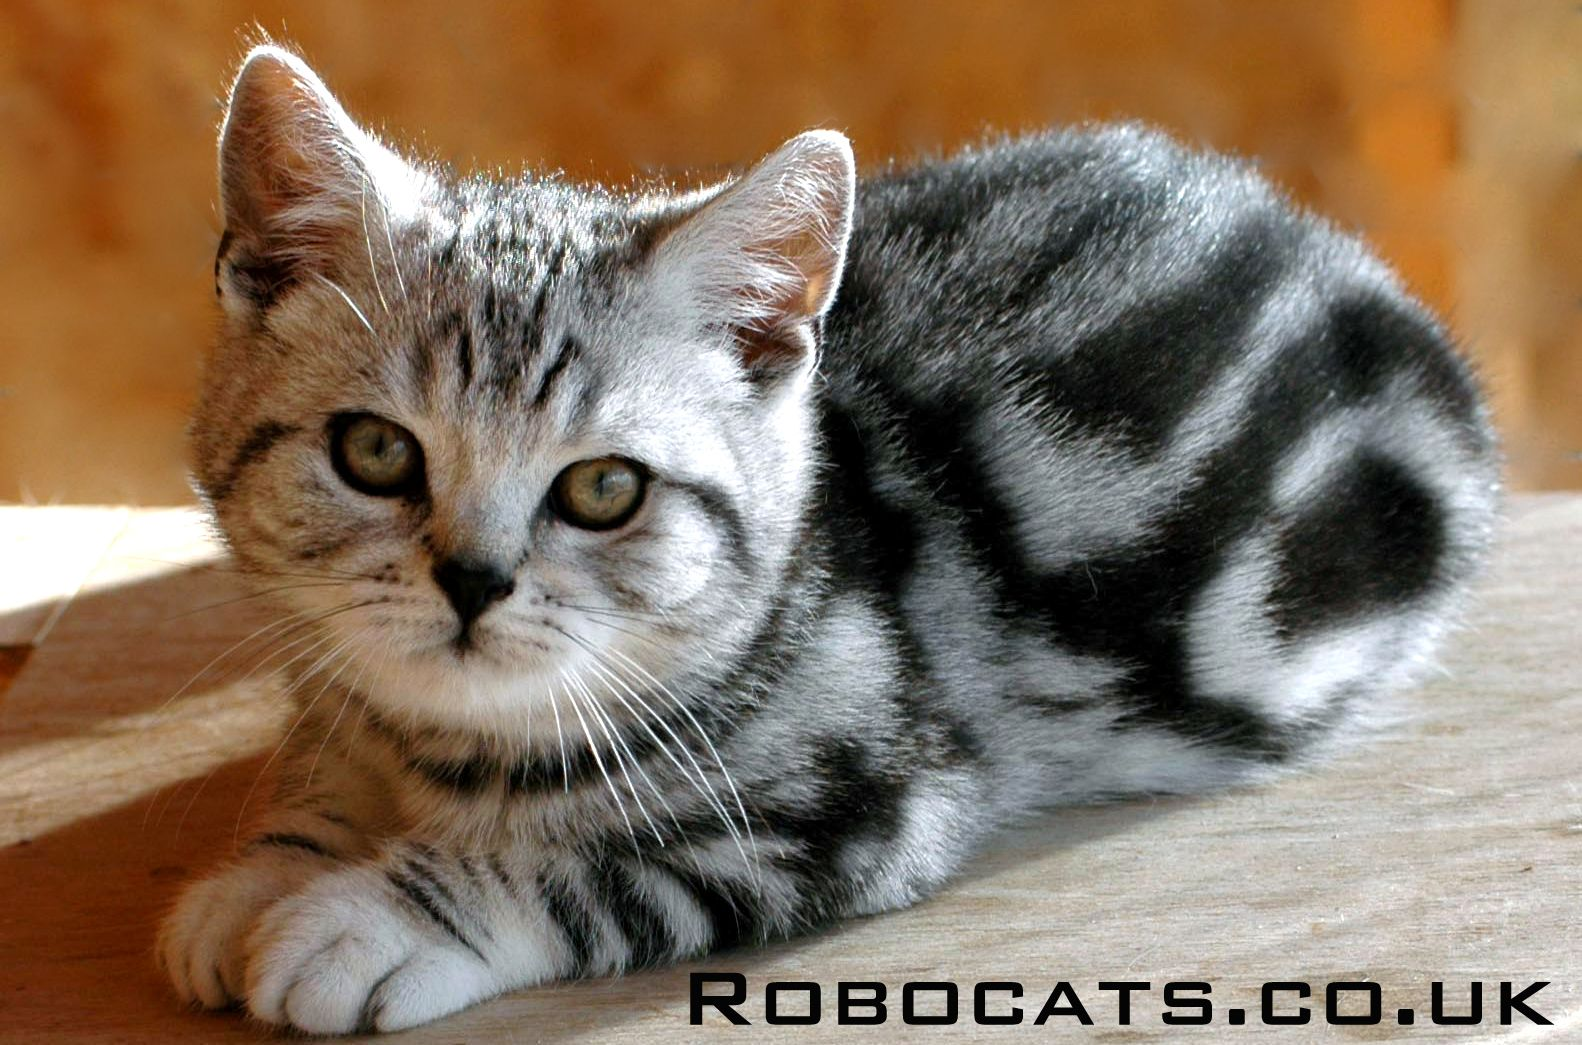 British Shorthair Silver Tabby Kitten Bred By Robocats Www Robocats Co Uk In 2020 Tabby Cat Silver Tabby Cat Silver Tabby Kitten